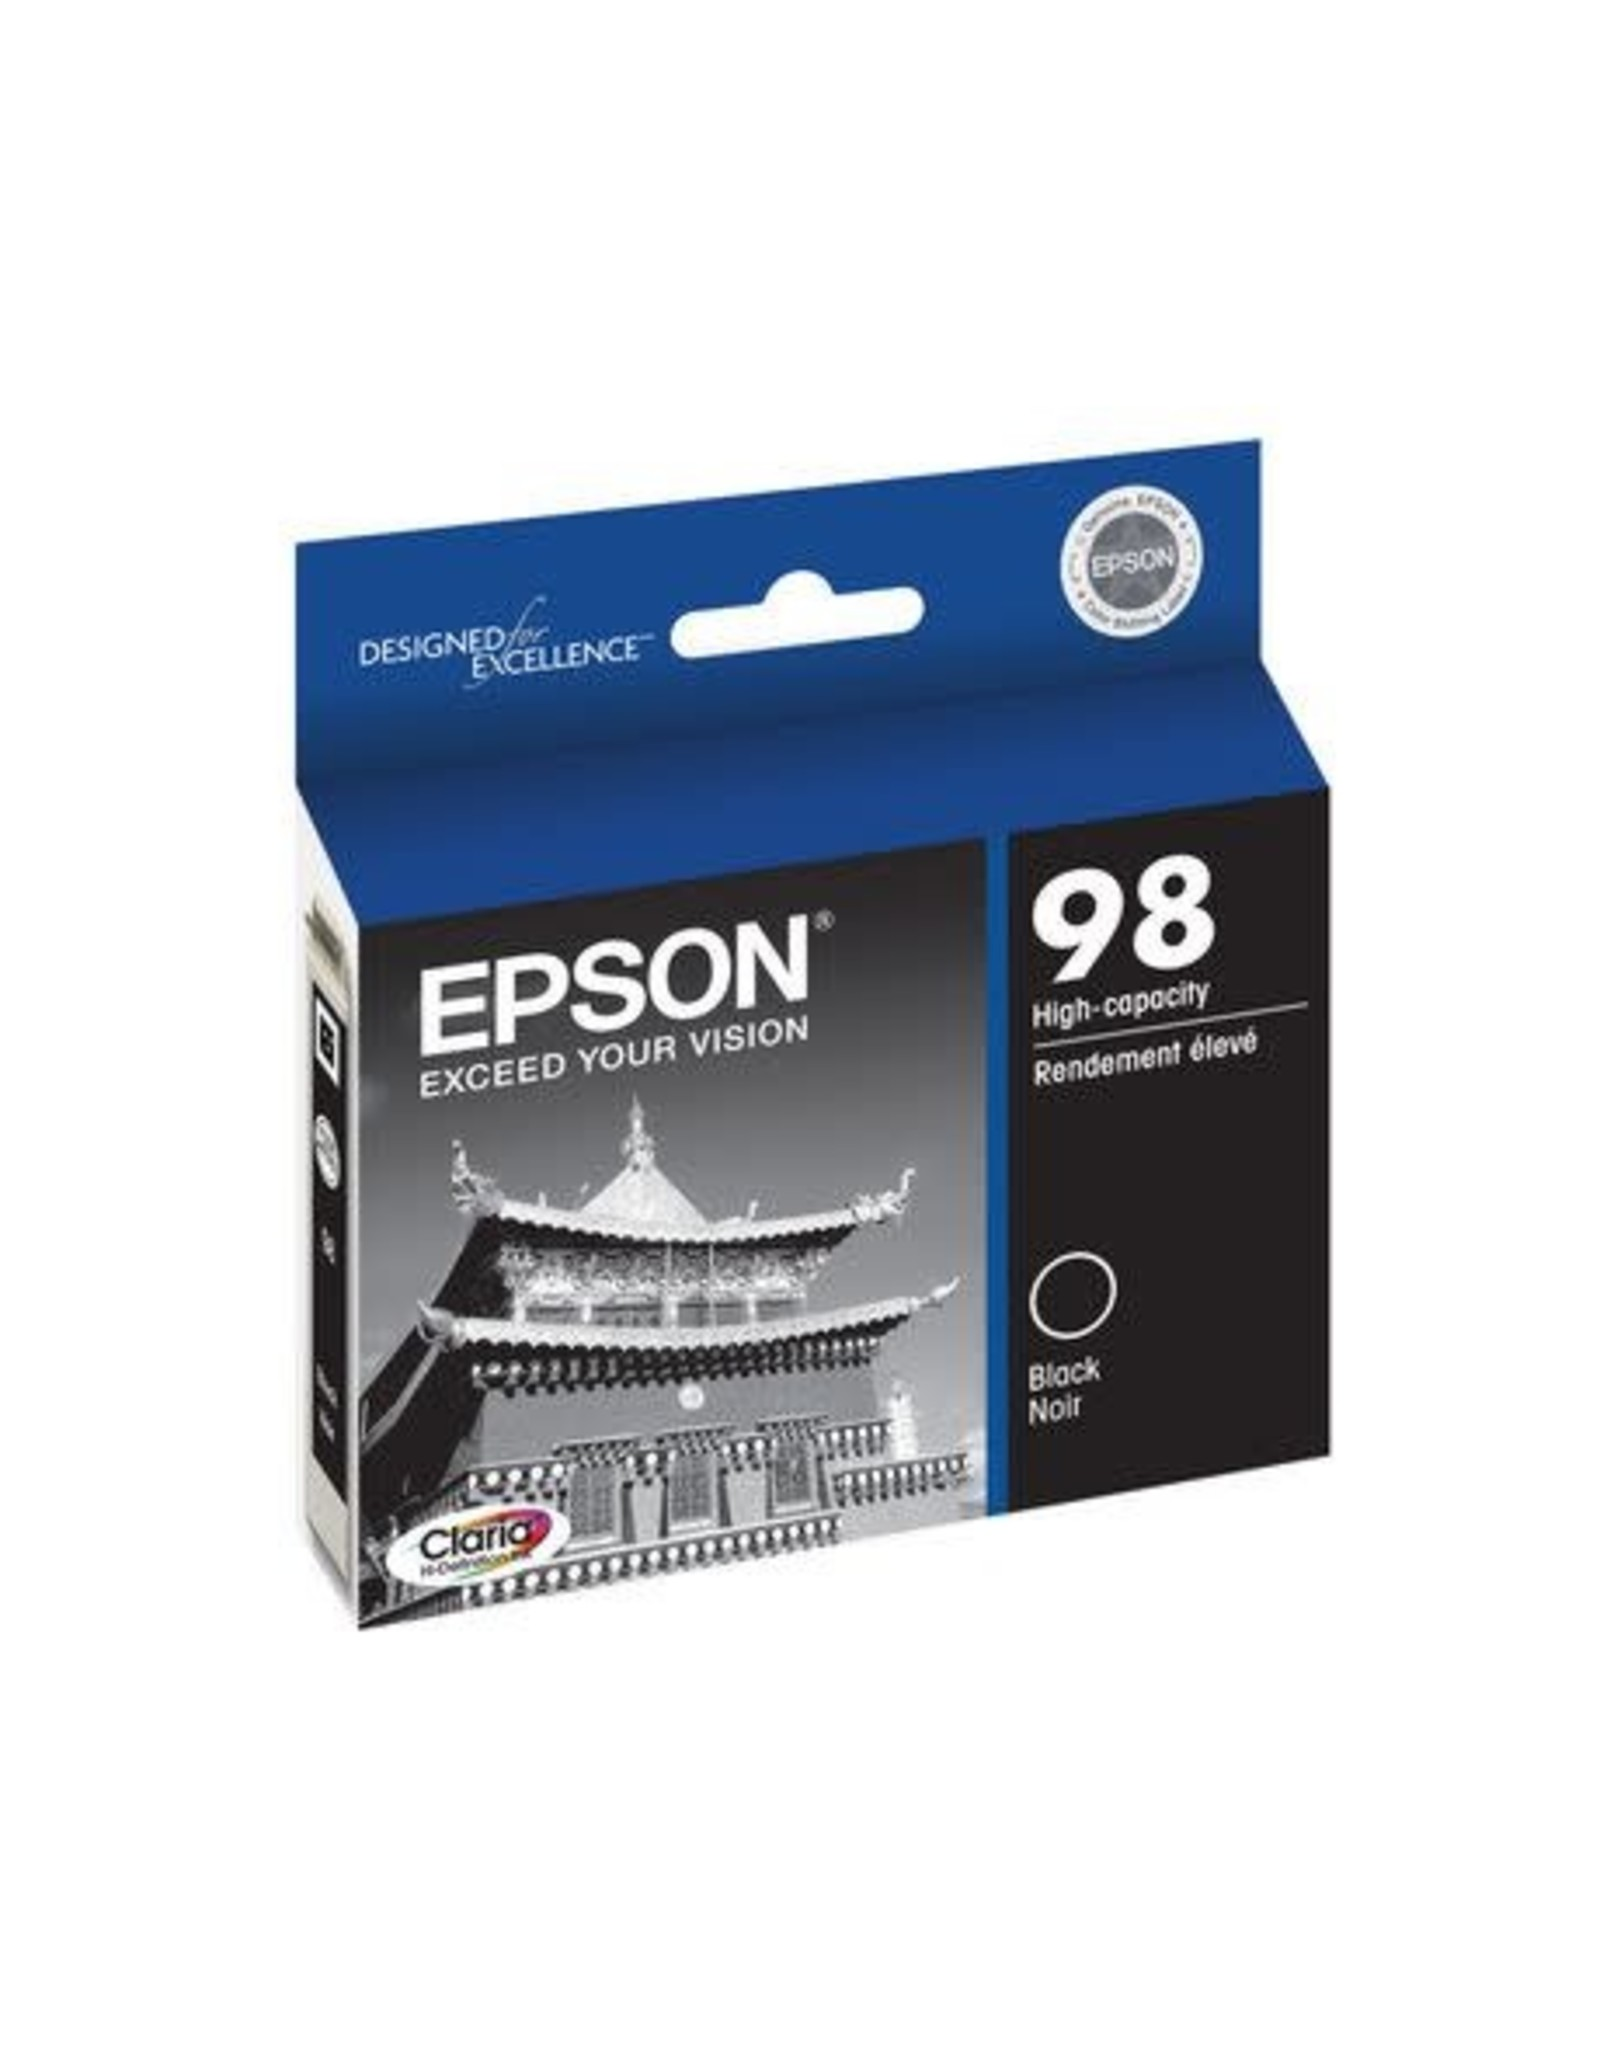 INKJET CARTRIDGE-EPSON #98 BLACK HIGH YIELD